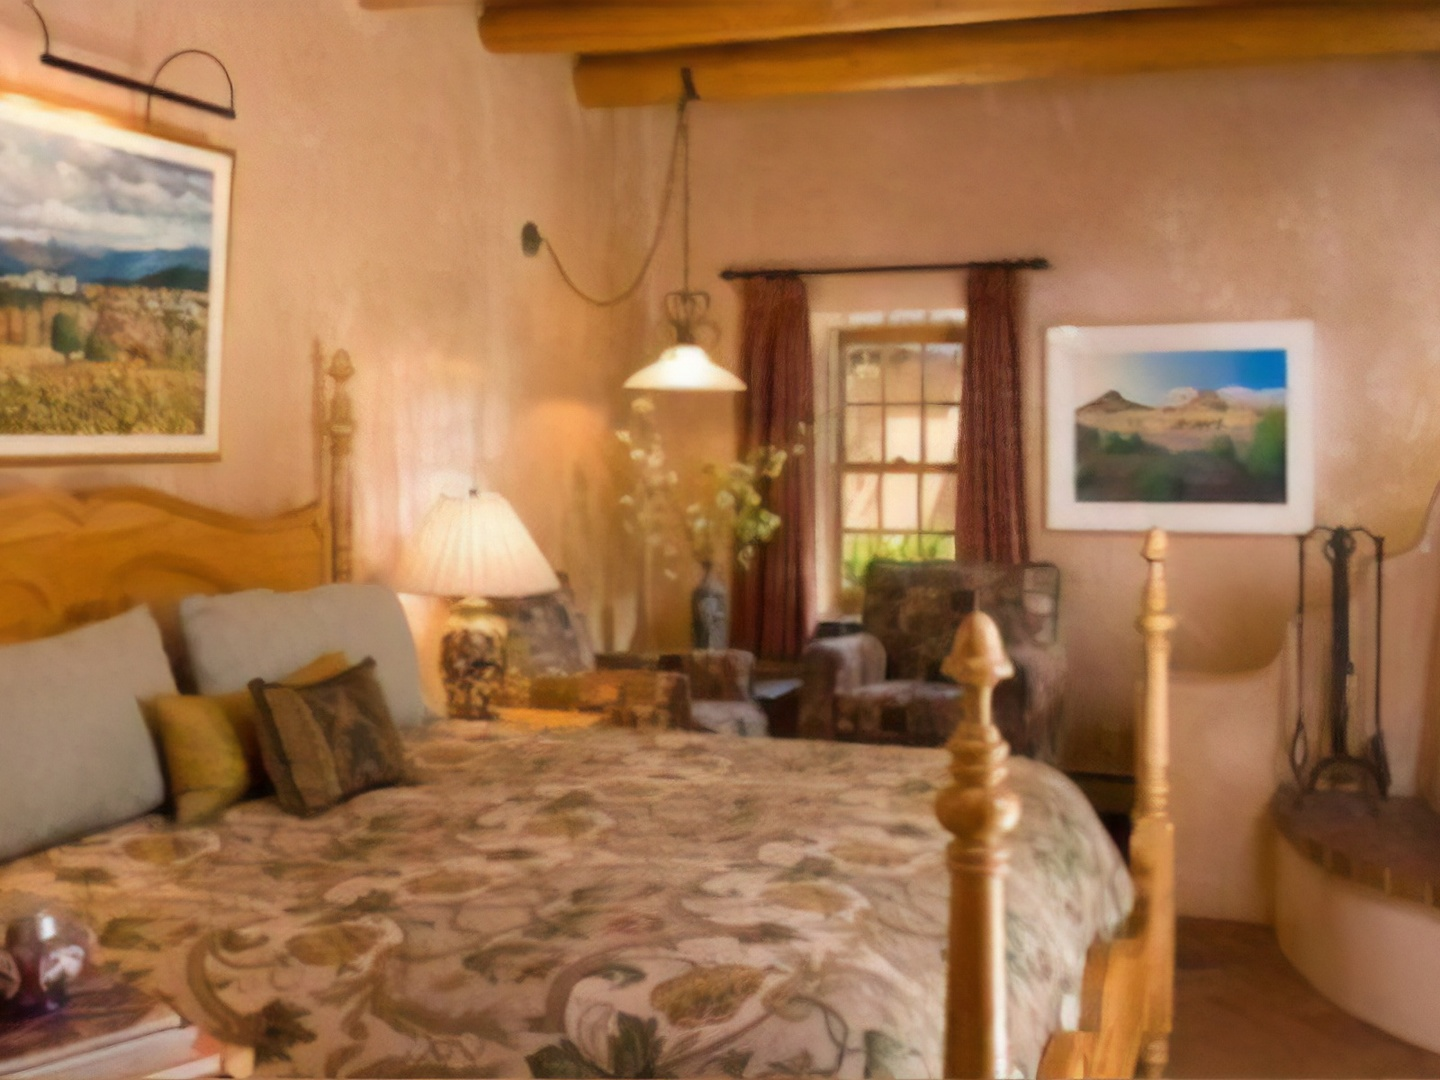 A living room filled with furniture and a fireplace at El Farolito Bed & Breakfast.